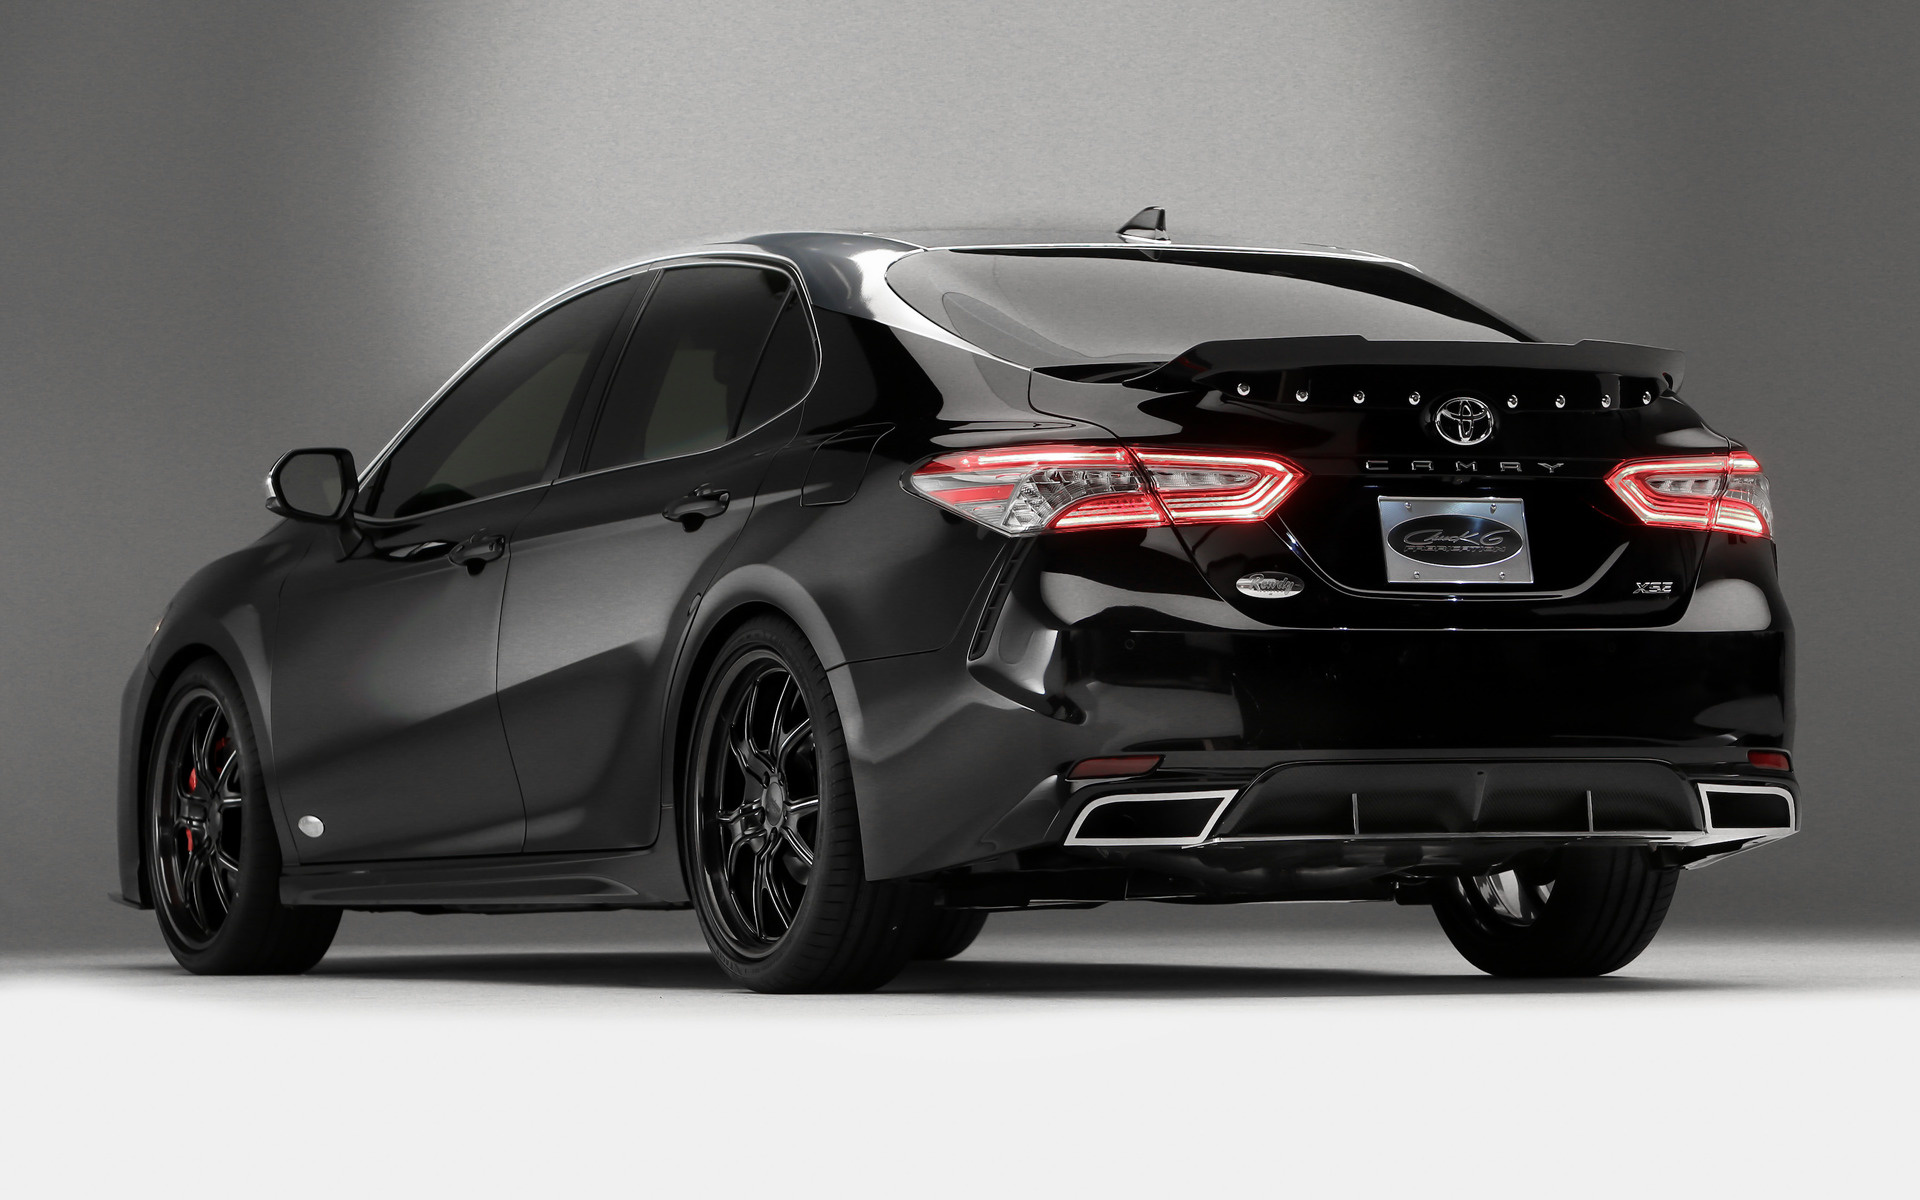 2018 Toyota Camry >> 2018 Toyota Camry Rowdy Edition by Kyle Busch - Wallpapers ...